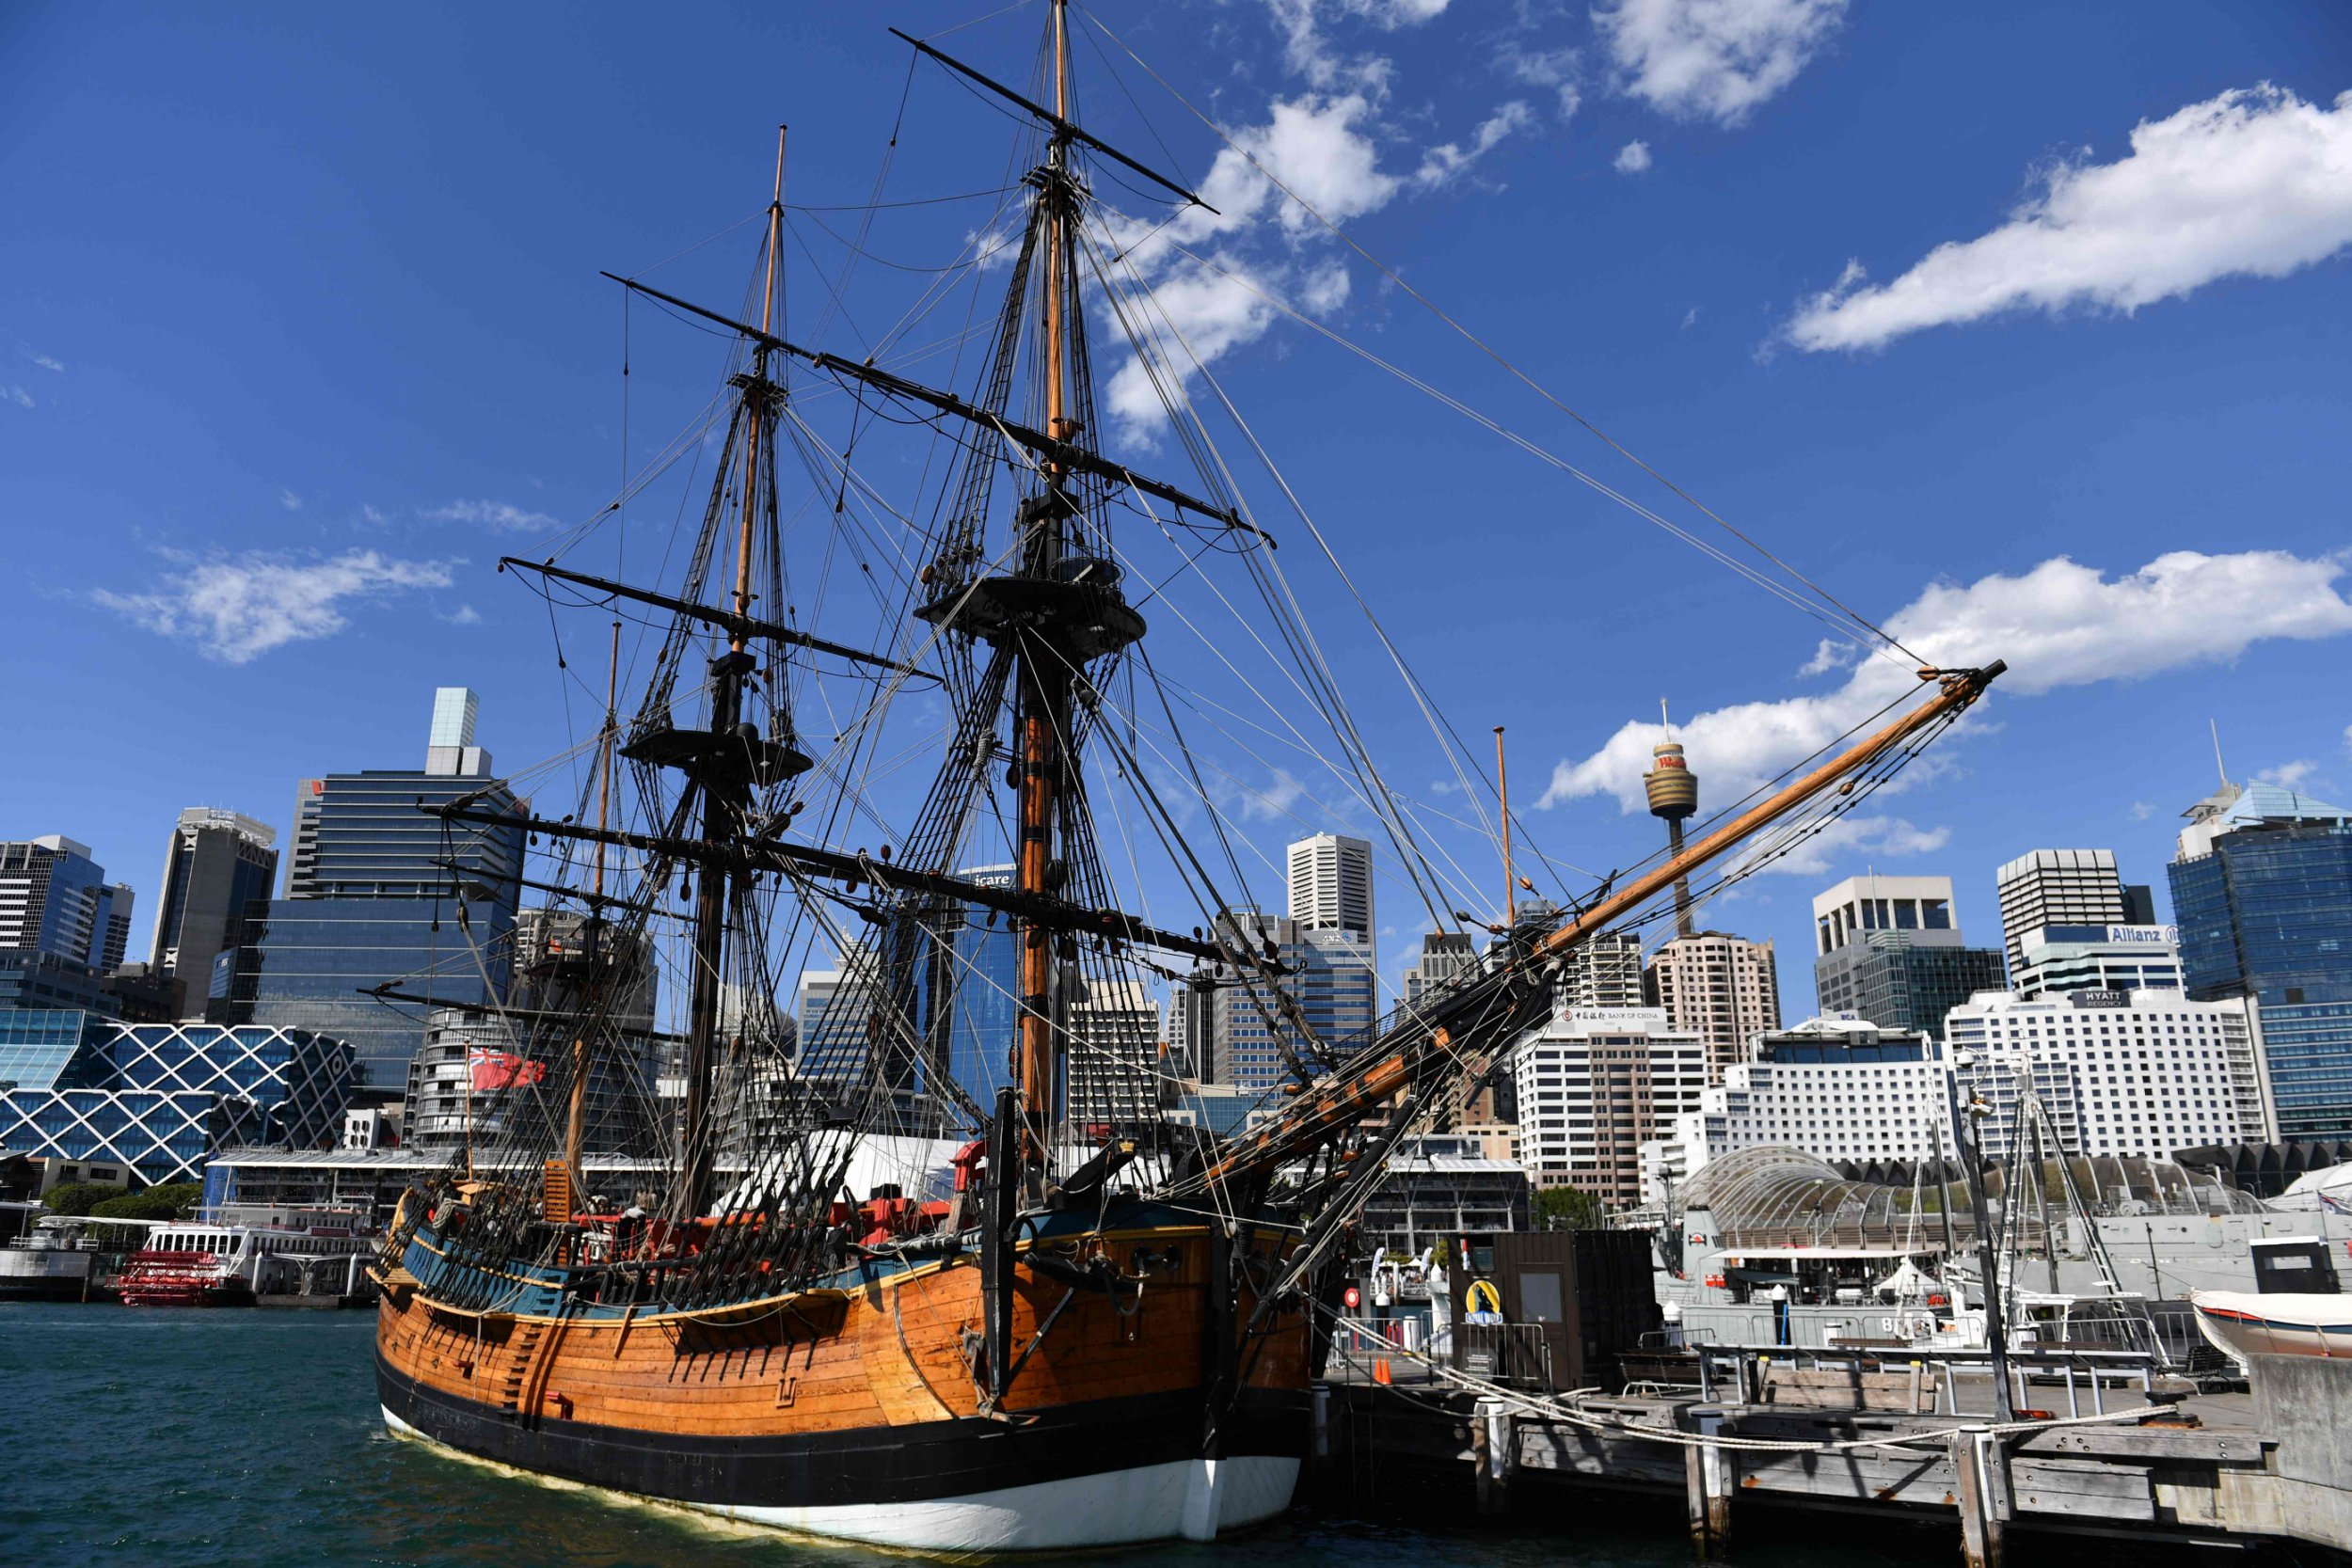 A replica of Captain Cook's ship 'Endeavour' is seen at the Australian National Maritime Museum in Sydney on September 19, 2018. - The centuries-long hunt for the remains of famed ship the Endeavour -- the vessel used by James Cook on a voyage of discovery to Australia and New Zealand -- could be nearing an end. (Photo by Saeed KHAN / AFP)SAEED KHAN/AFP/Getty Images